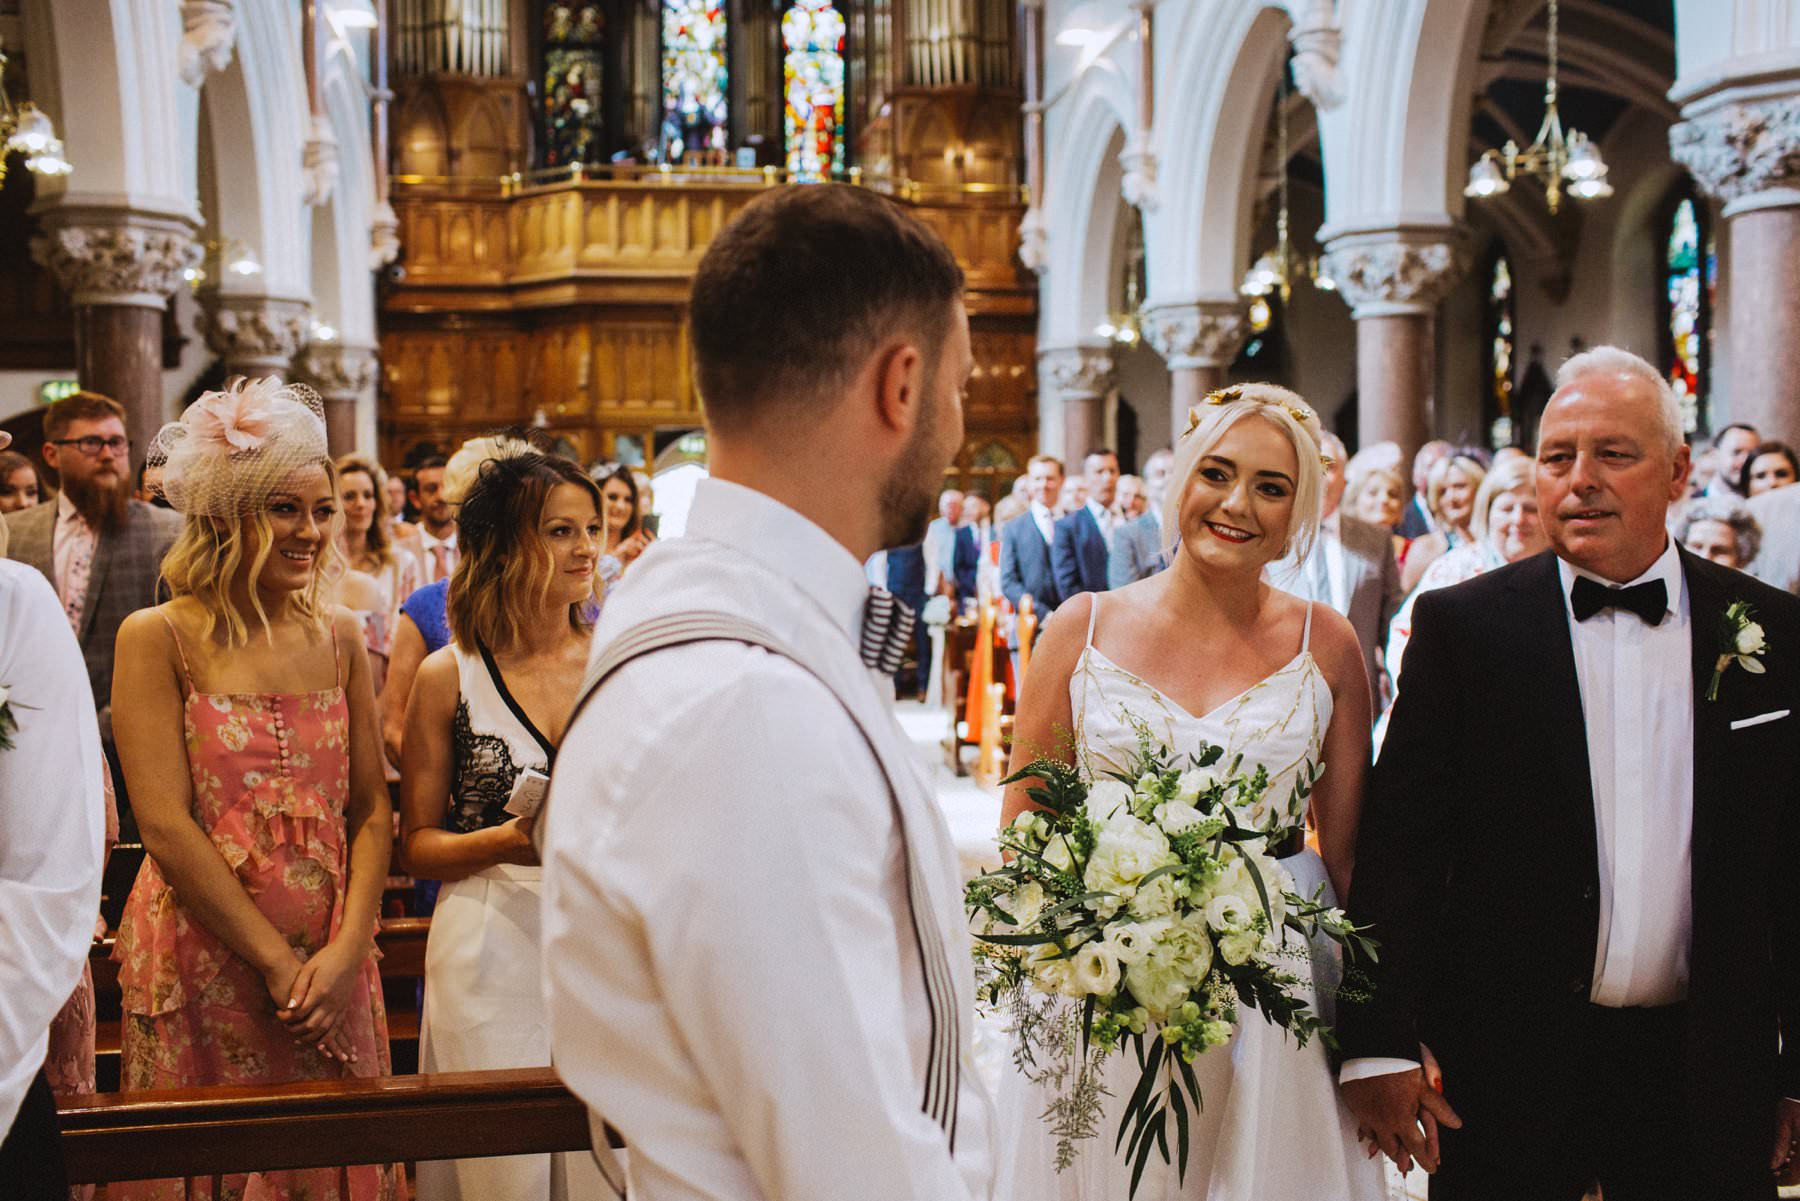 first look, bride and groom see each other for the first time at their belfast wedding